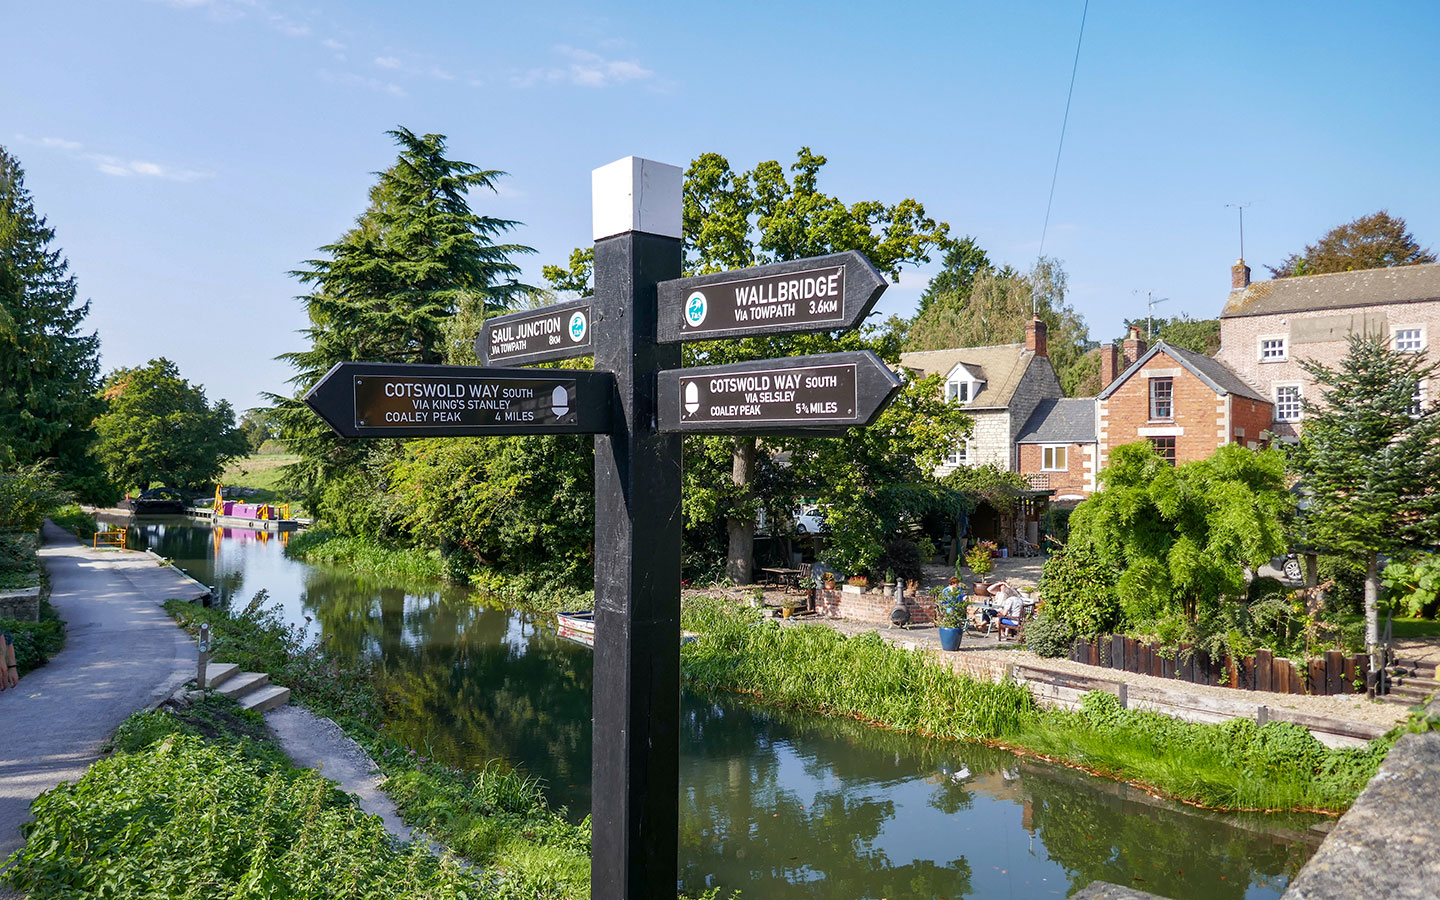 Stroudwater navigation